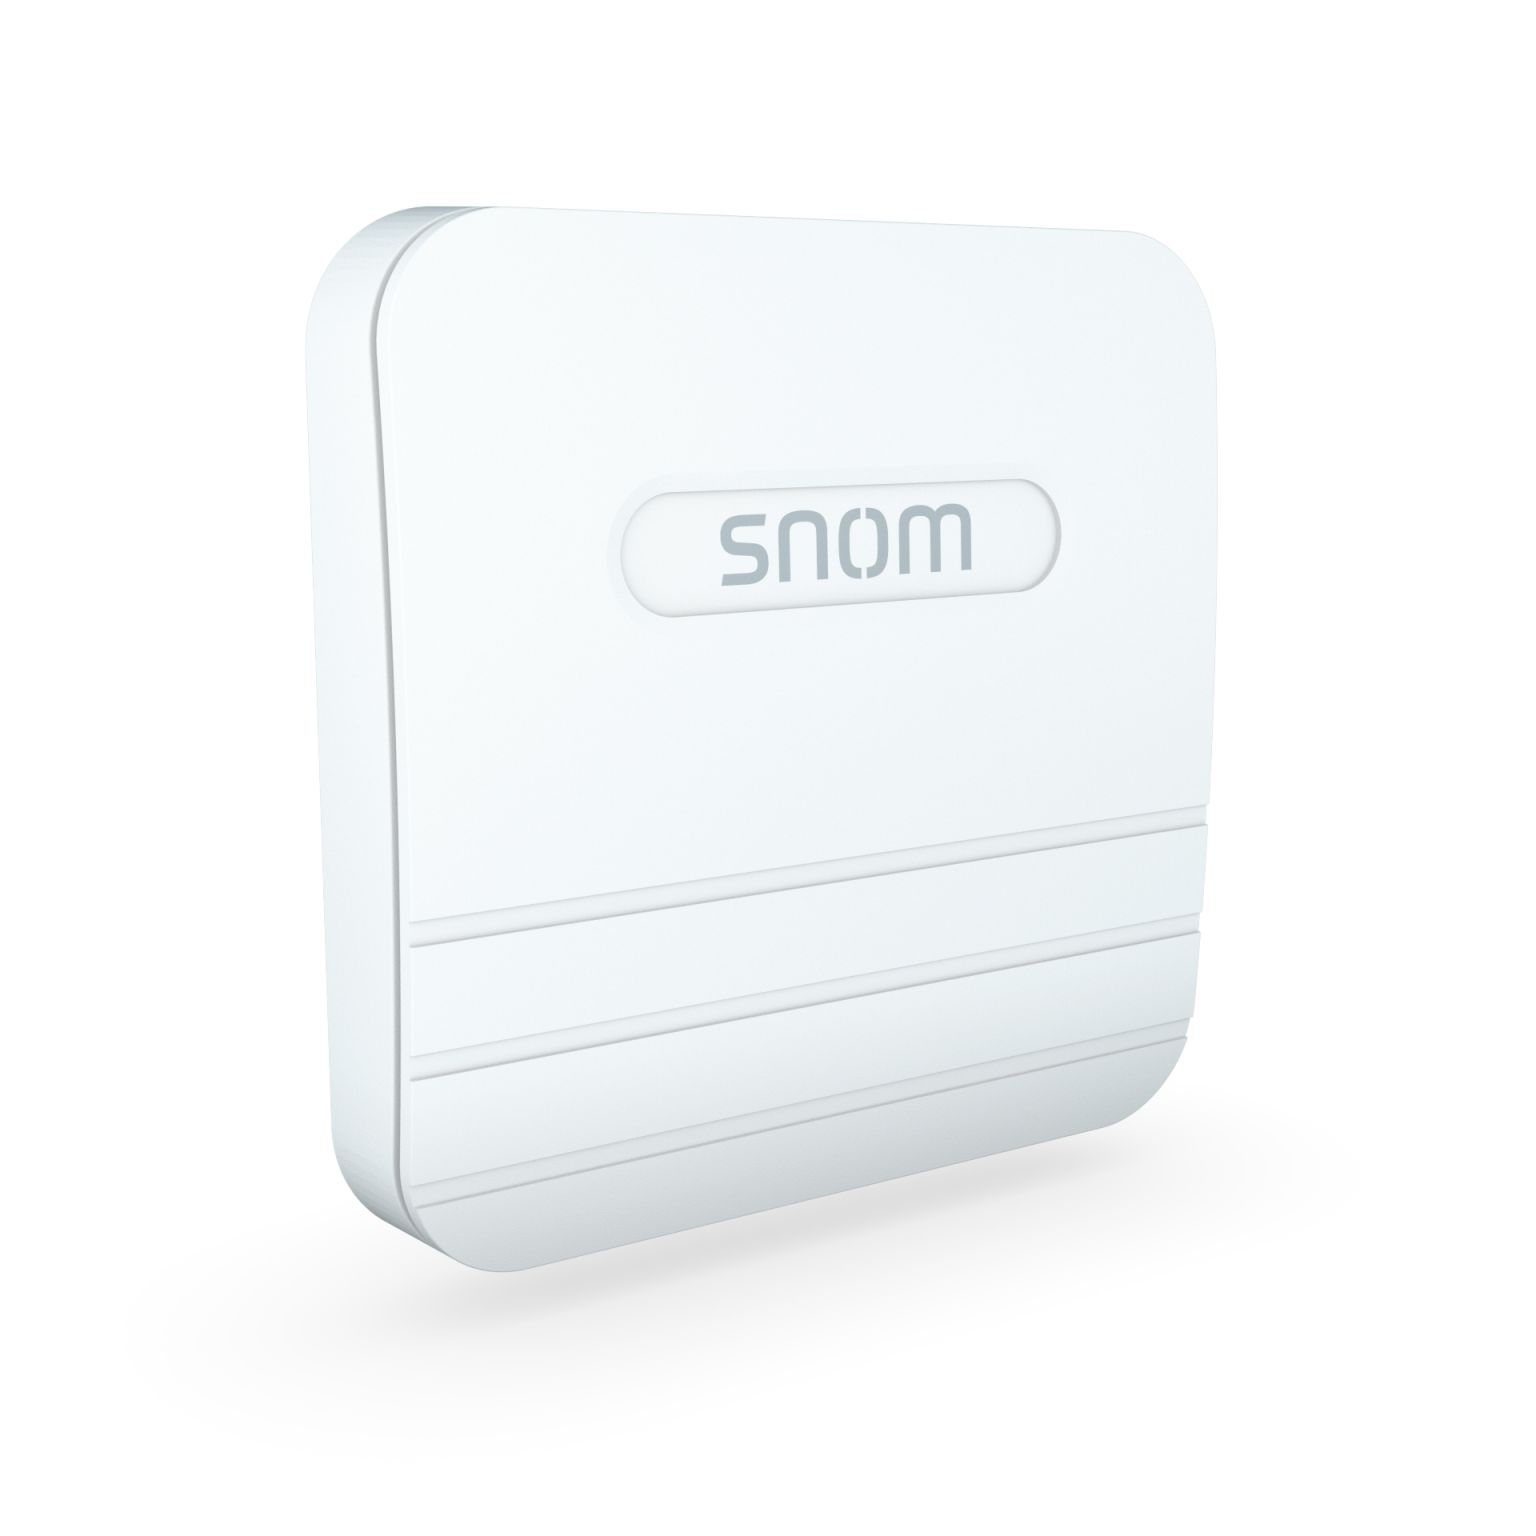 Expand your projects with Snom Beacons